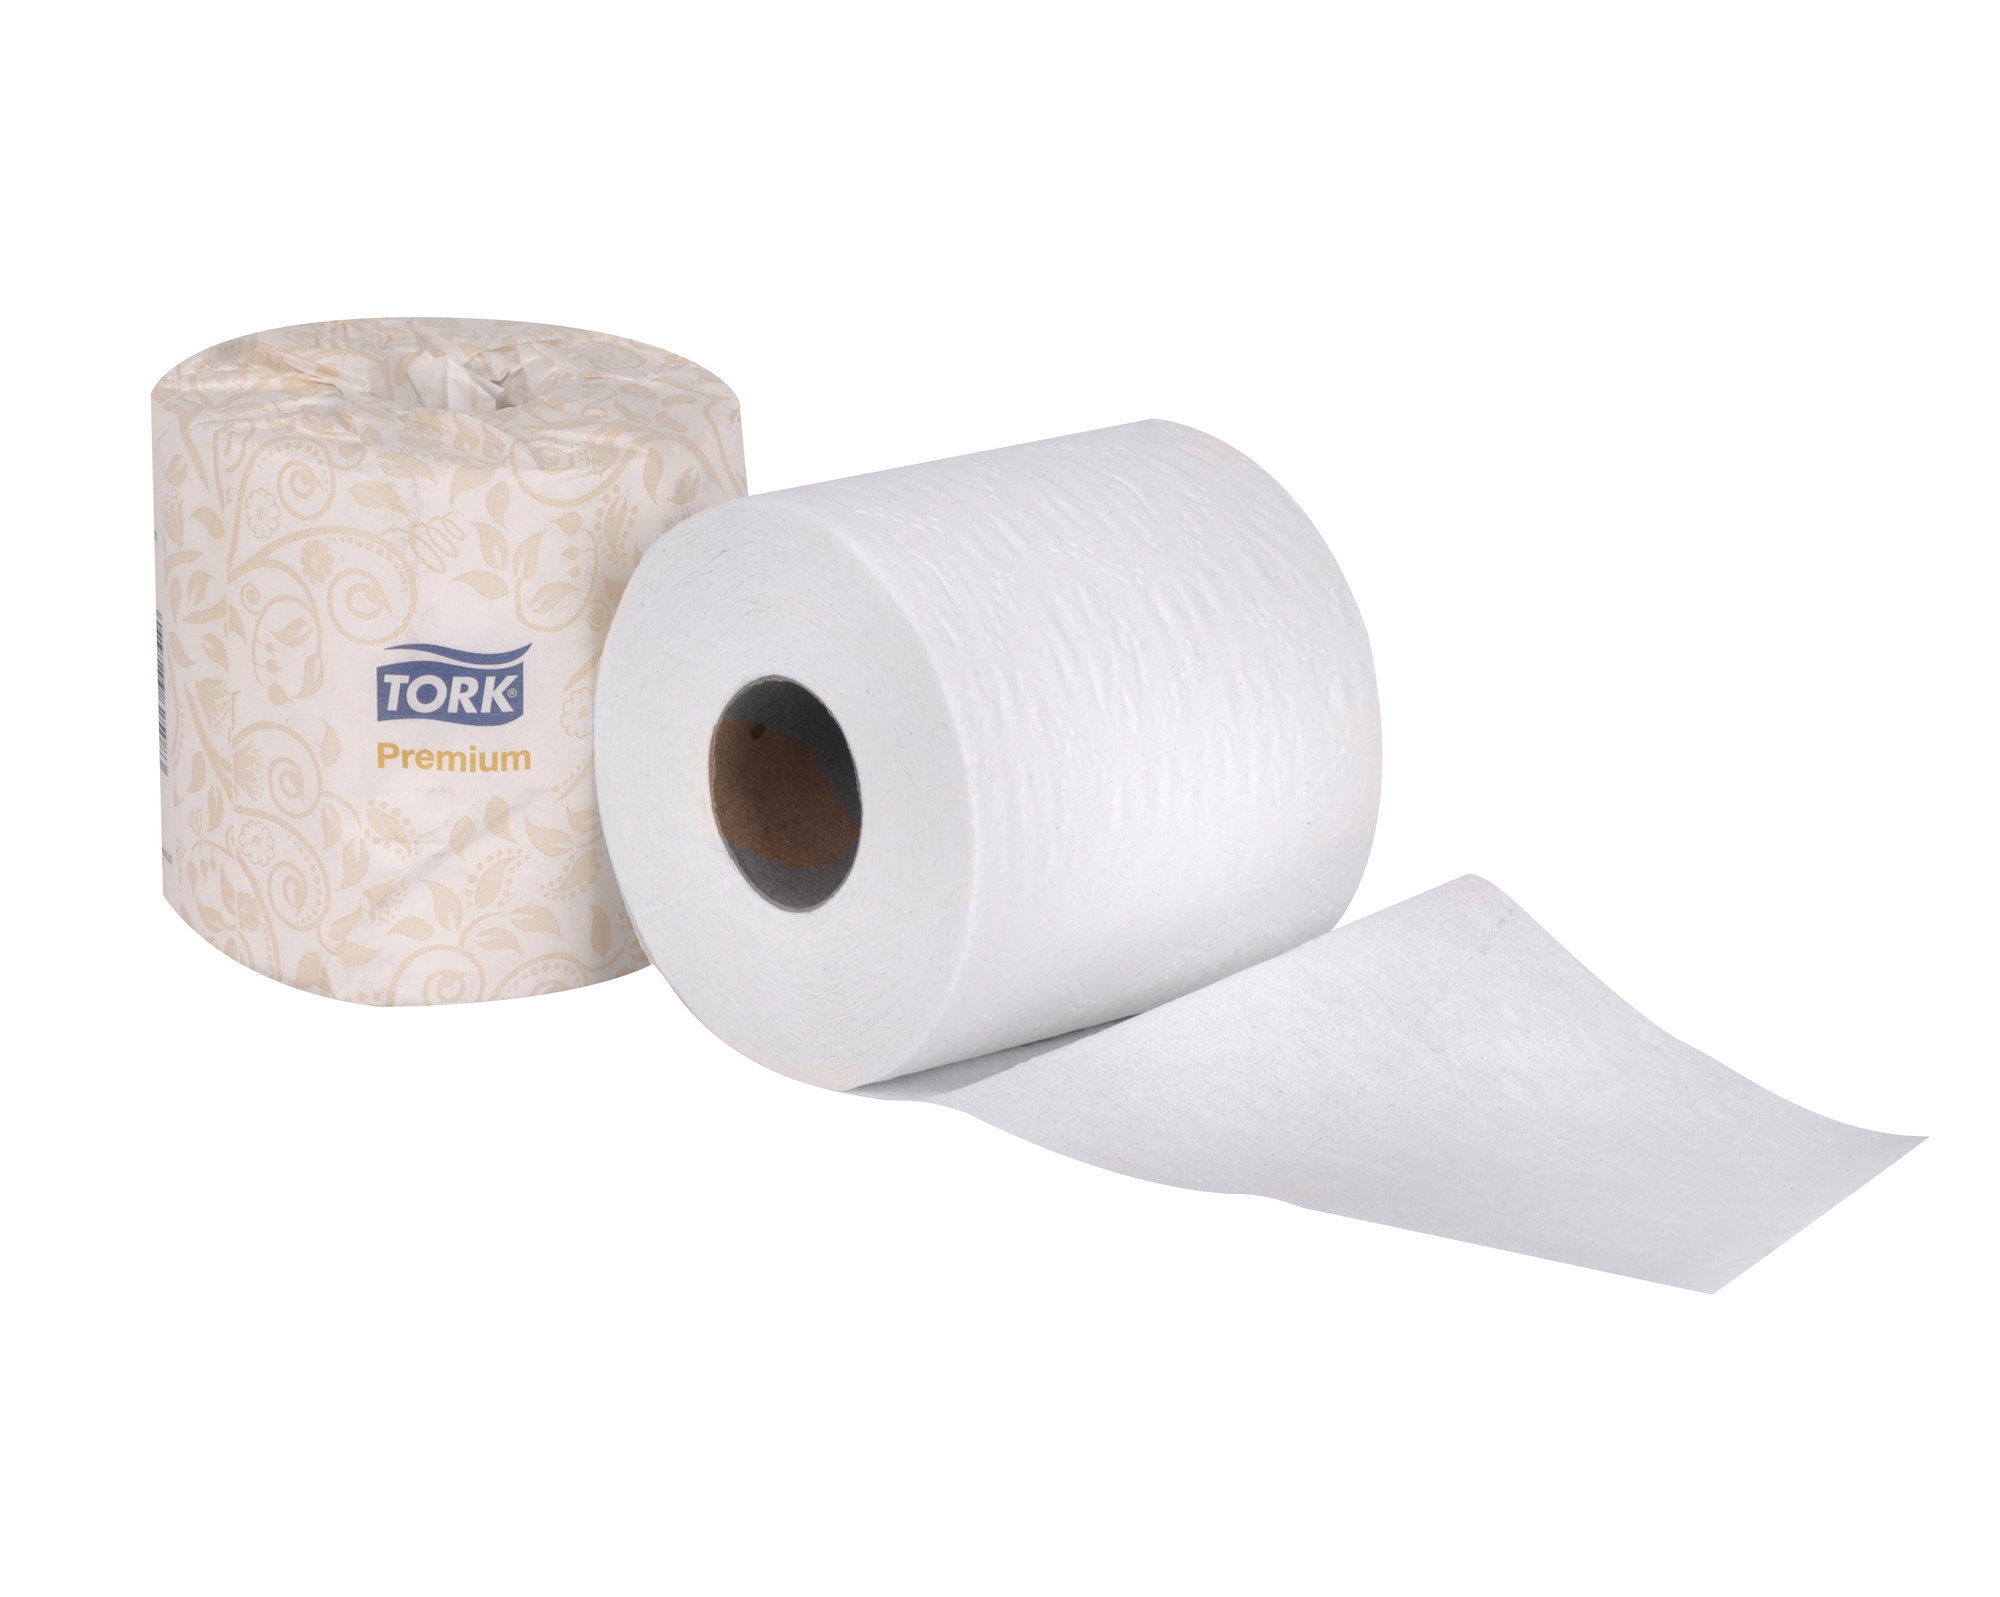 Tork Premium Bath Tissue Roll